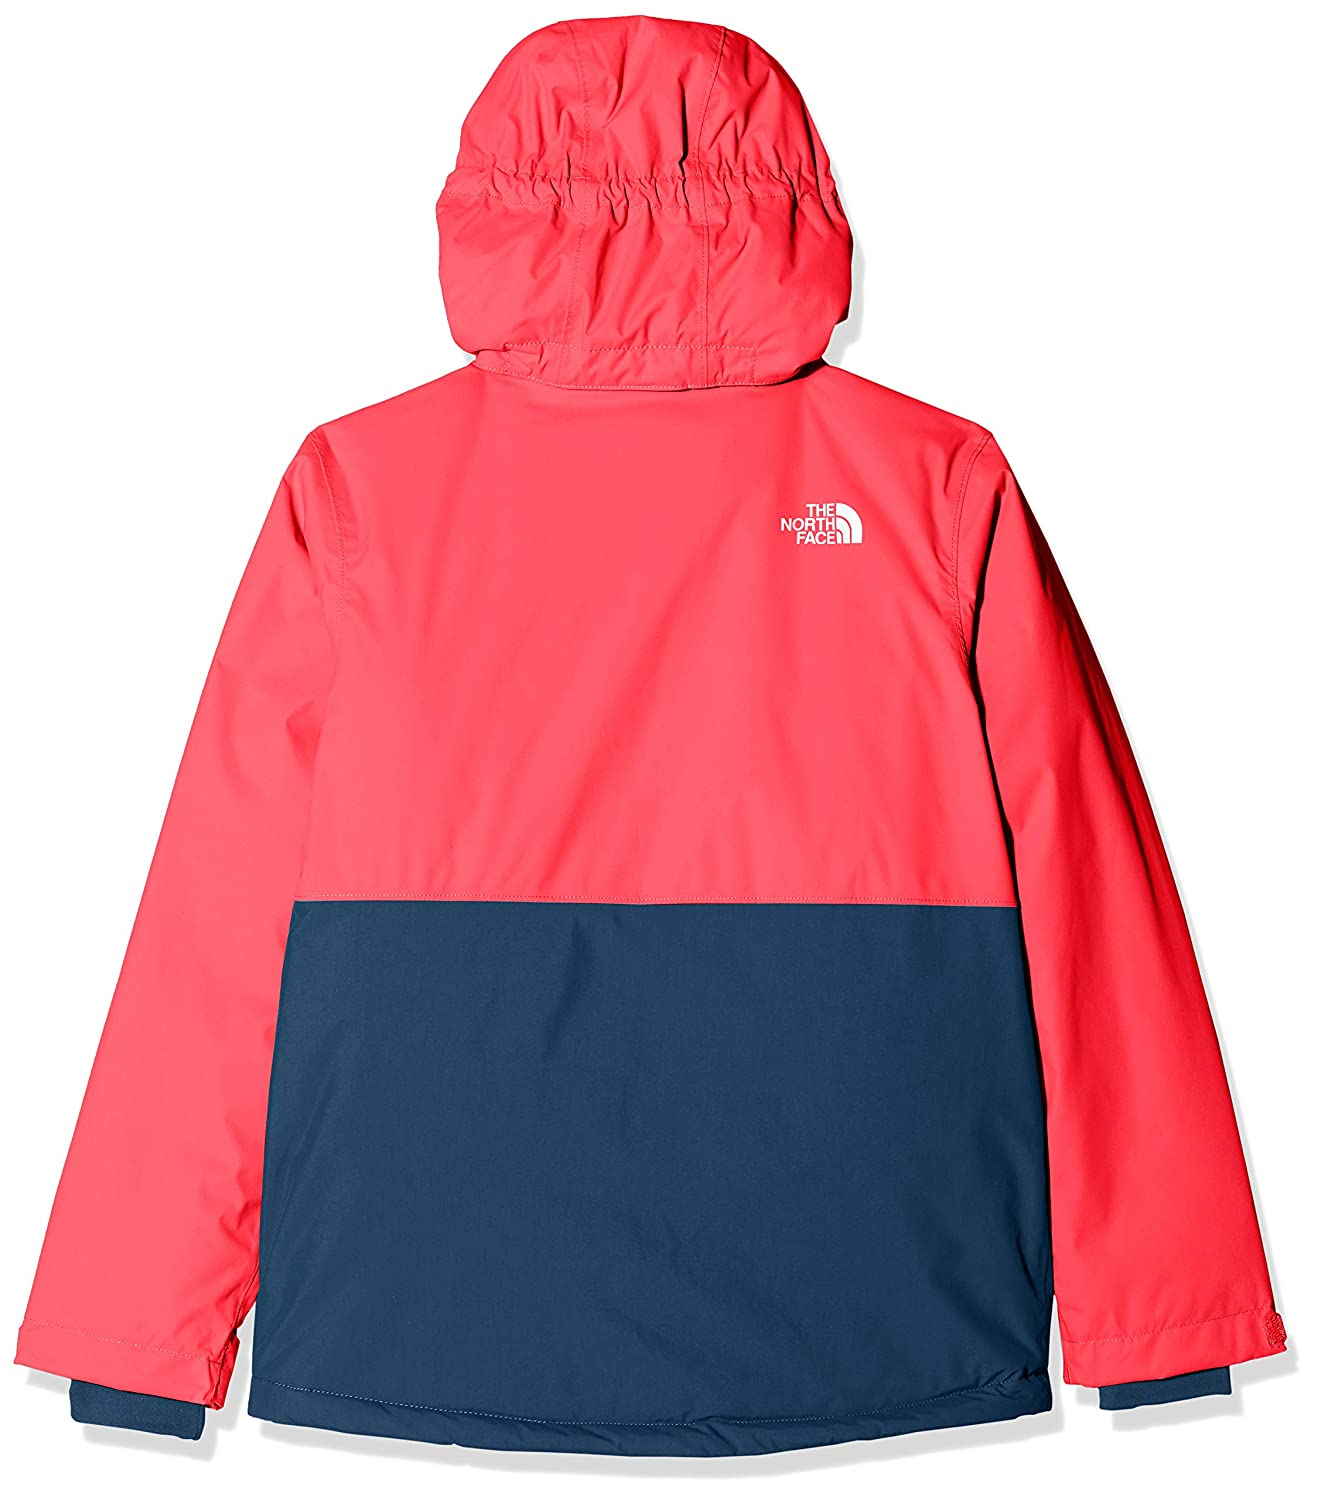 175269aa99 The North Face Youth Snowquest Plus Veste Enfant: Amazon.fr: Sports et  Loisirs